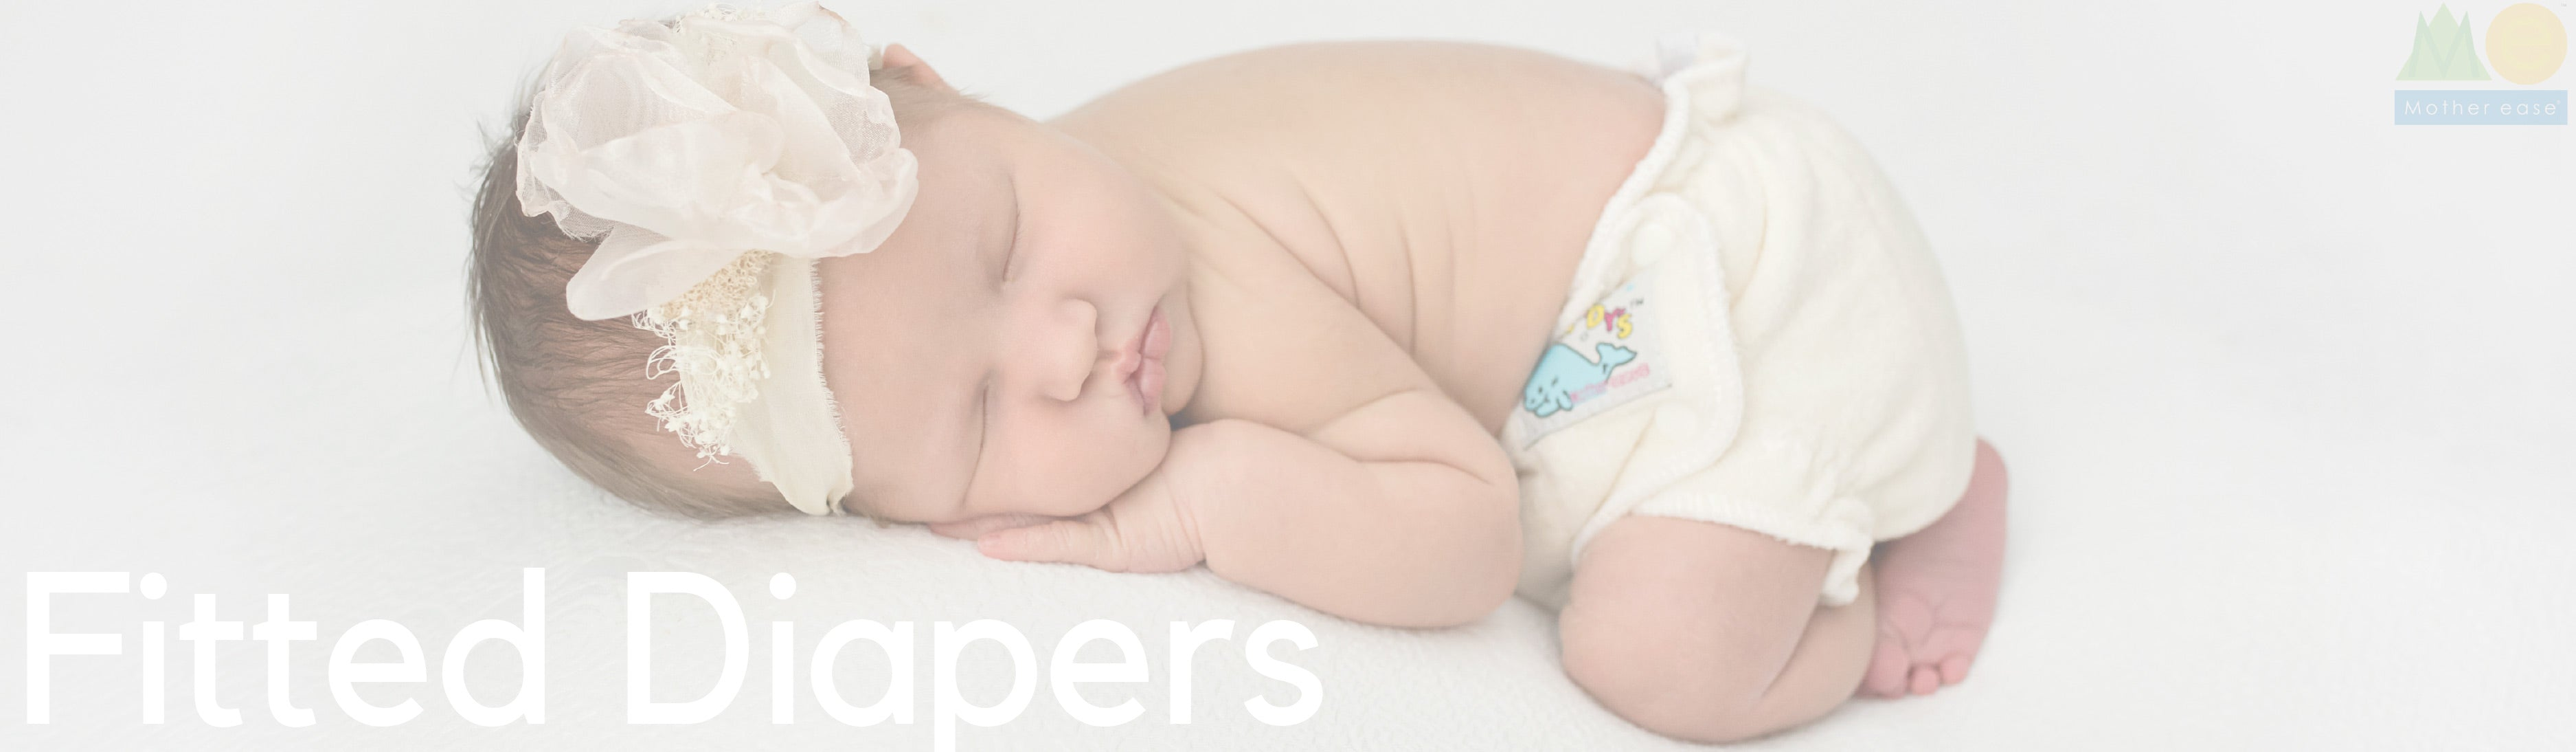 Mother-ease-fitted-diapers-banner-isabelle